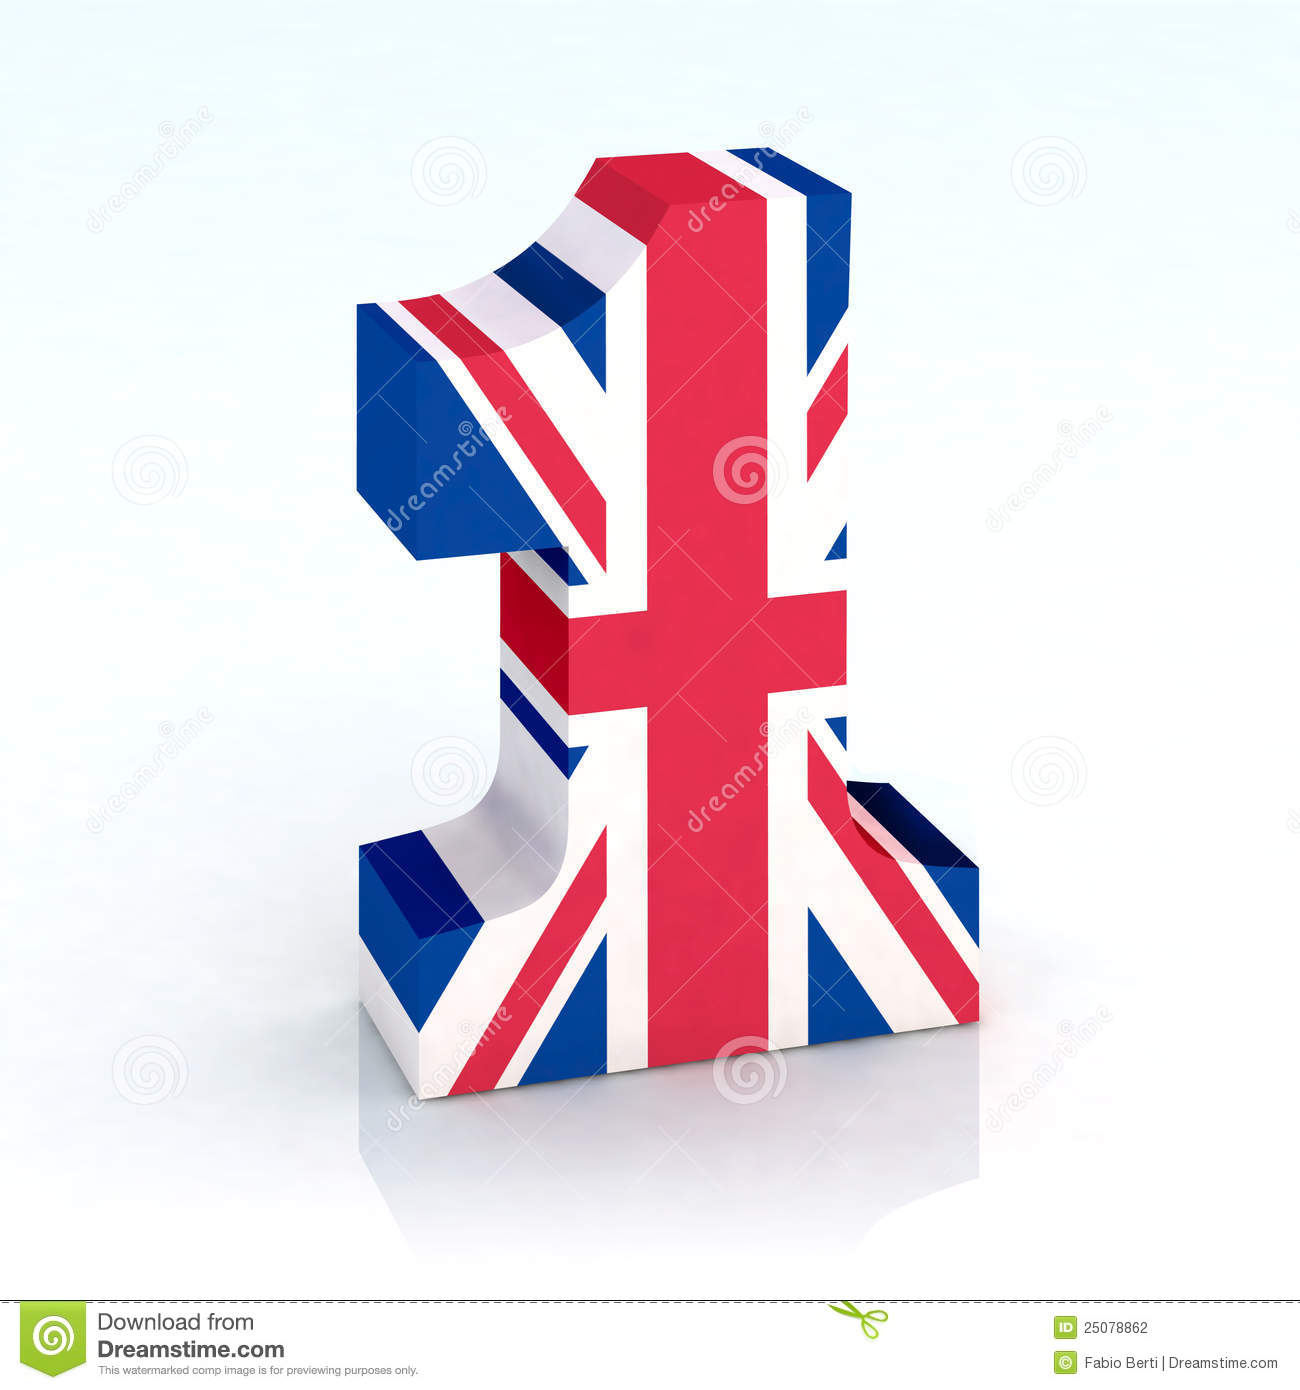 Http Www Dreamstime Com Stock Photography Number One English Flag Image25078862